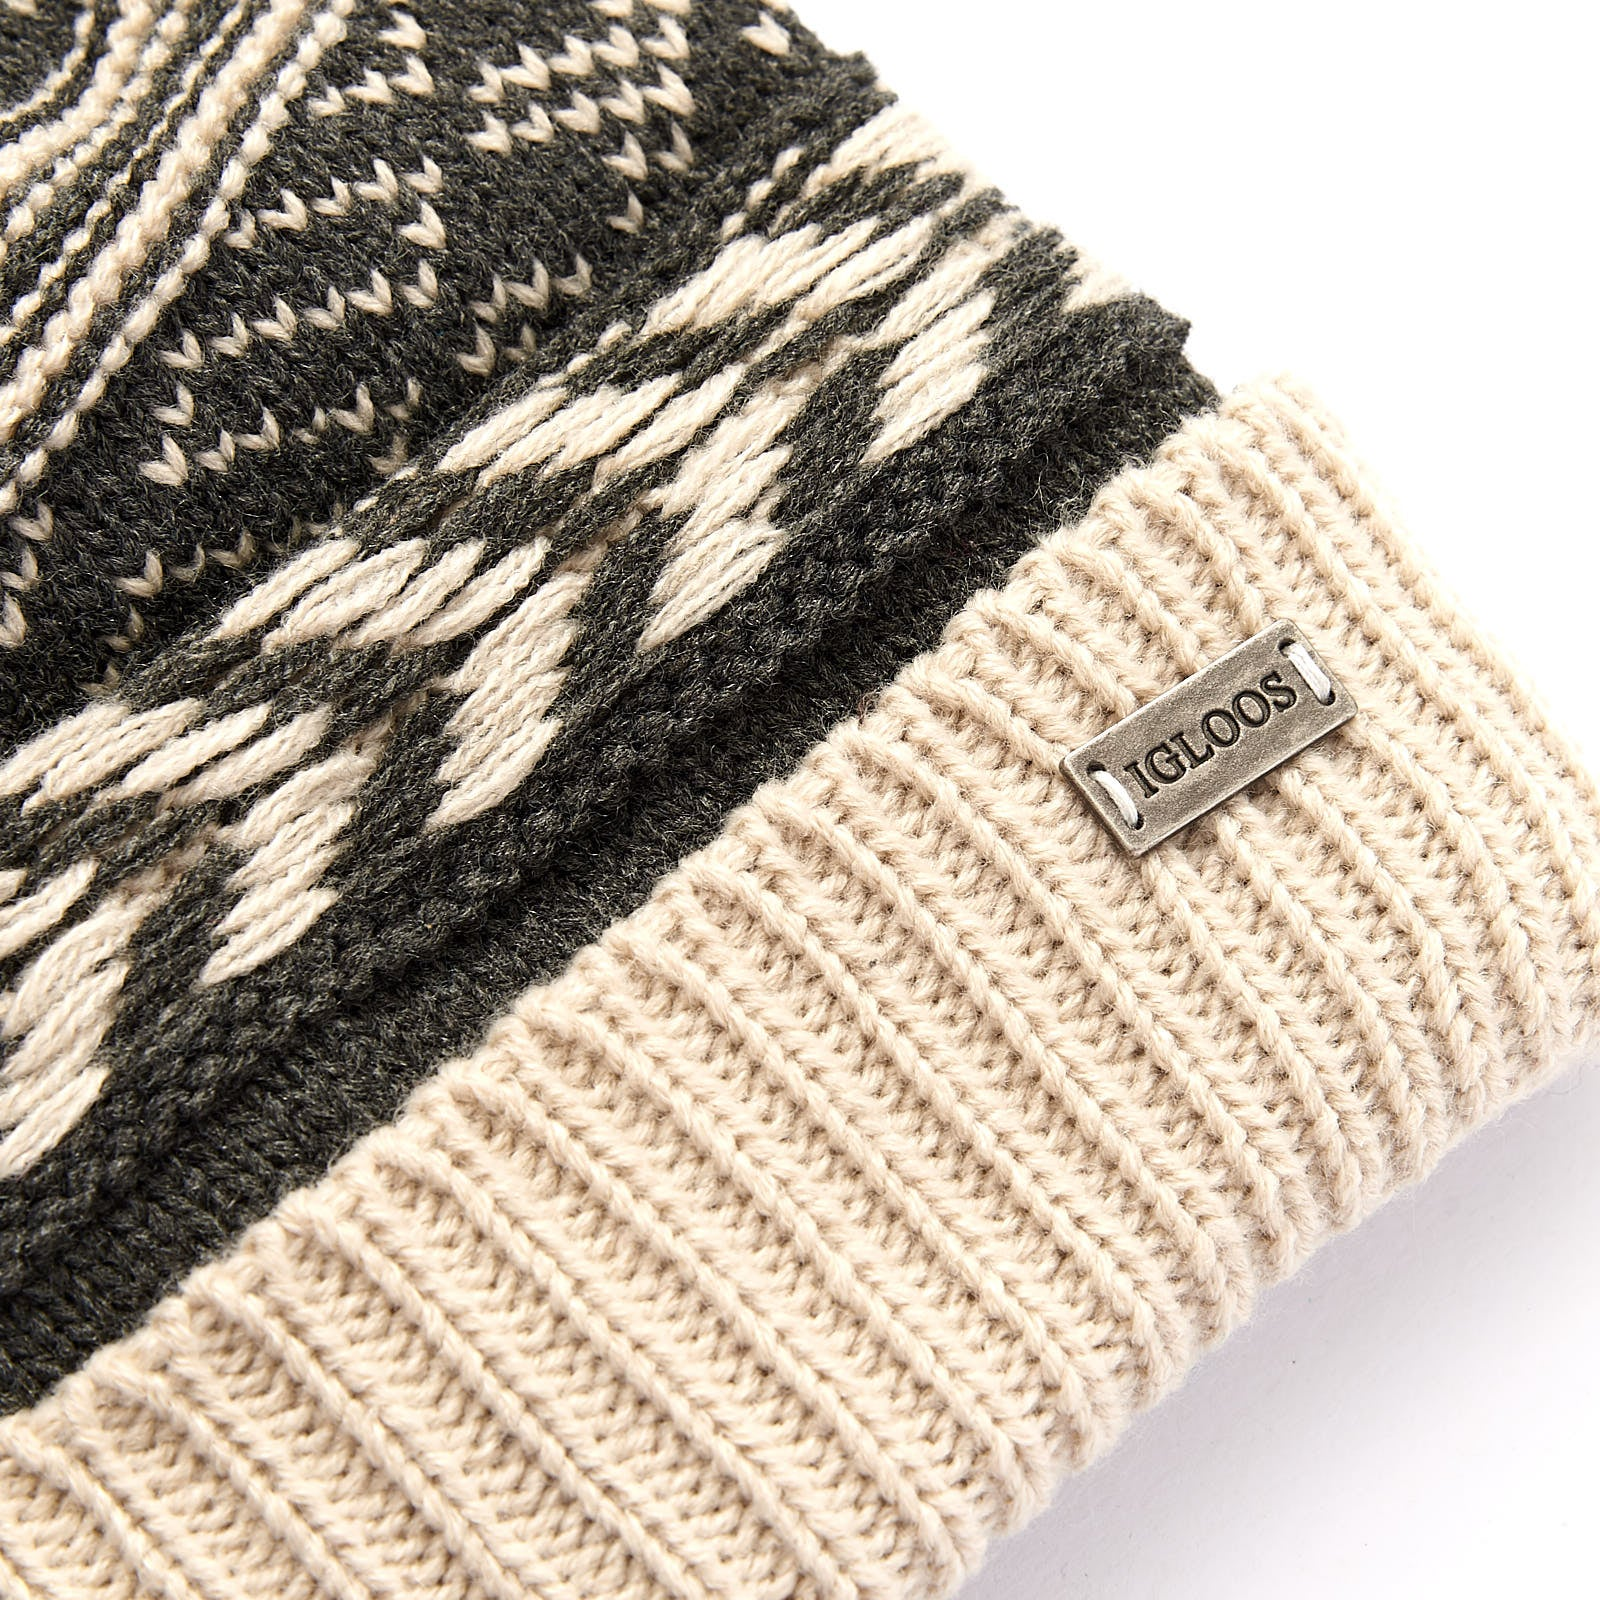 Ladies' Acrylic Fair Isle Cuff Cap with Pom